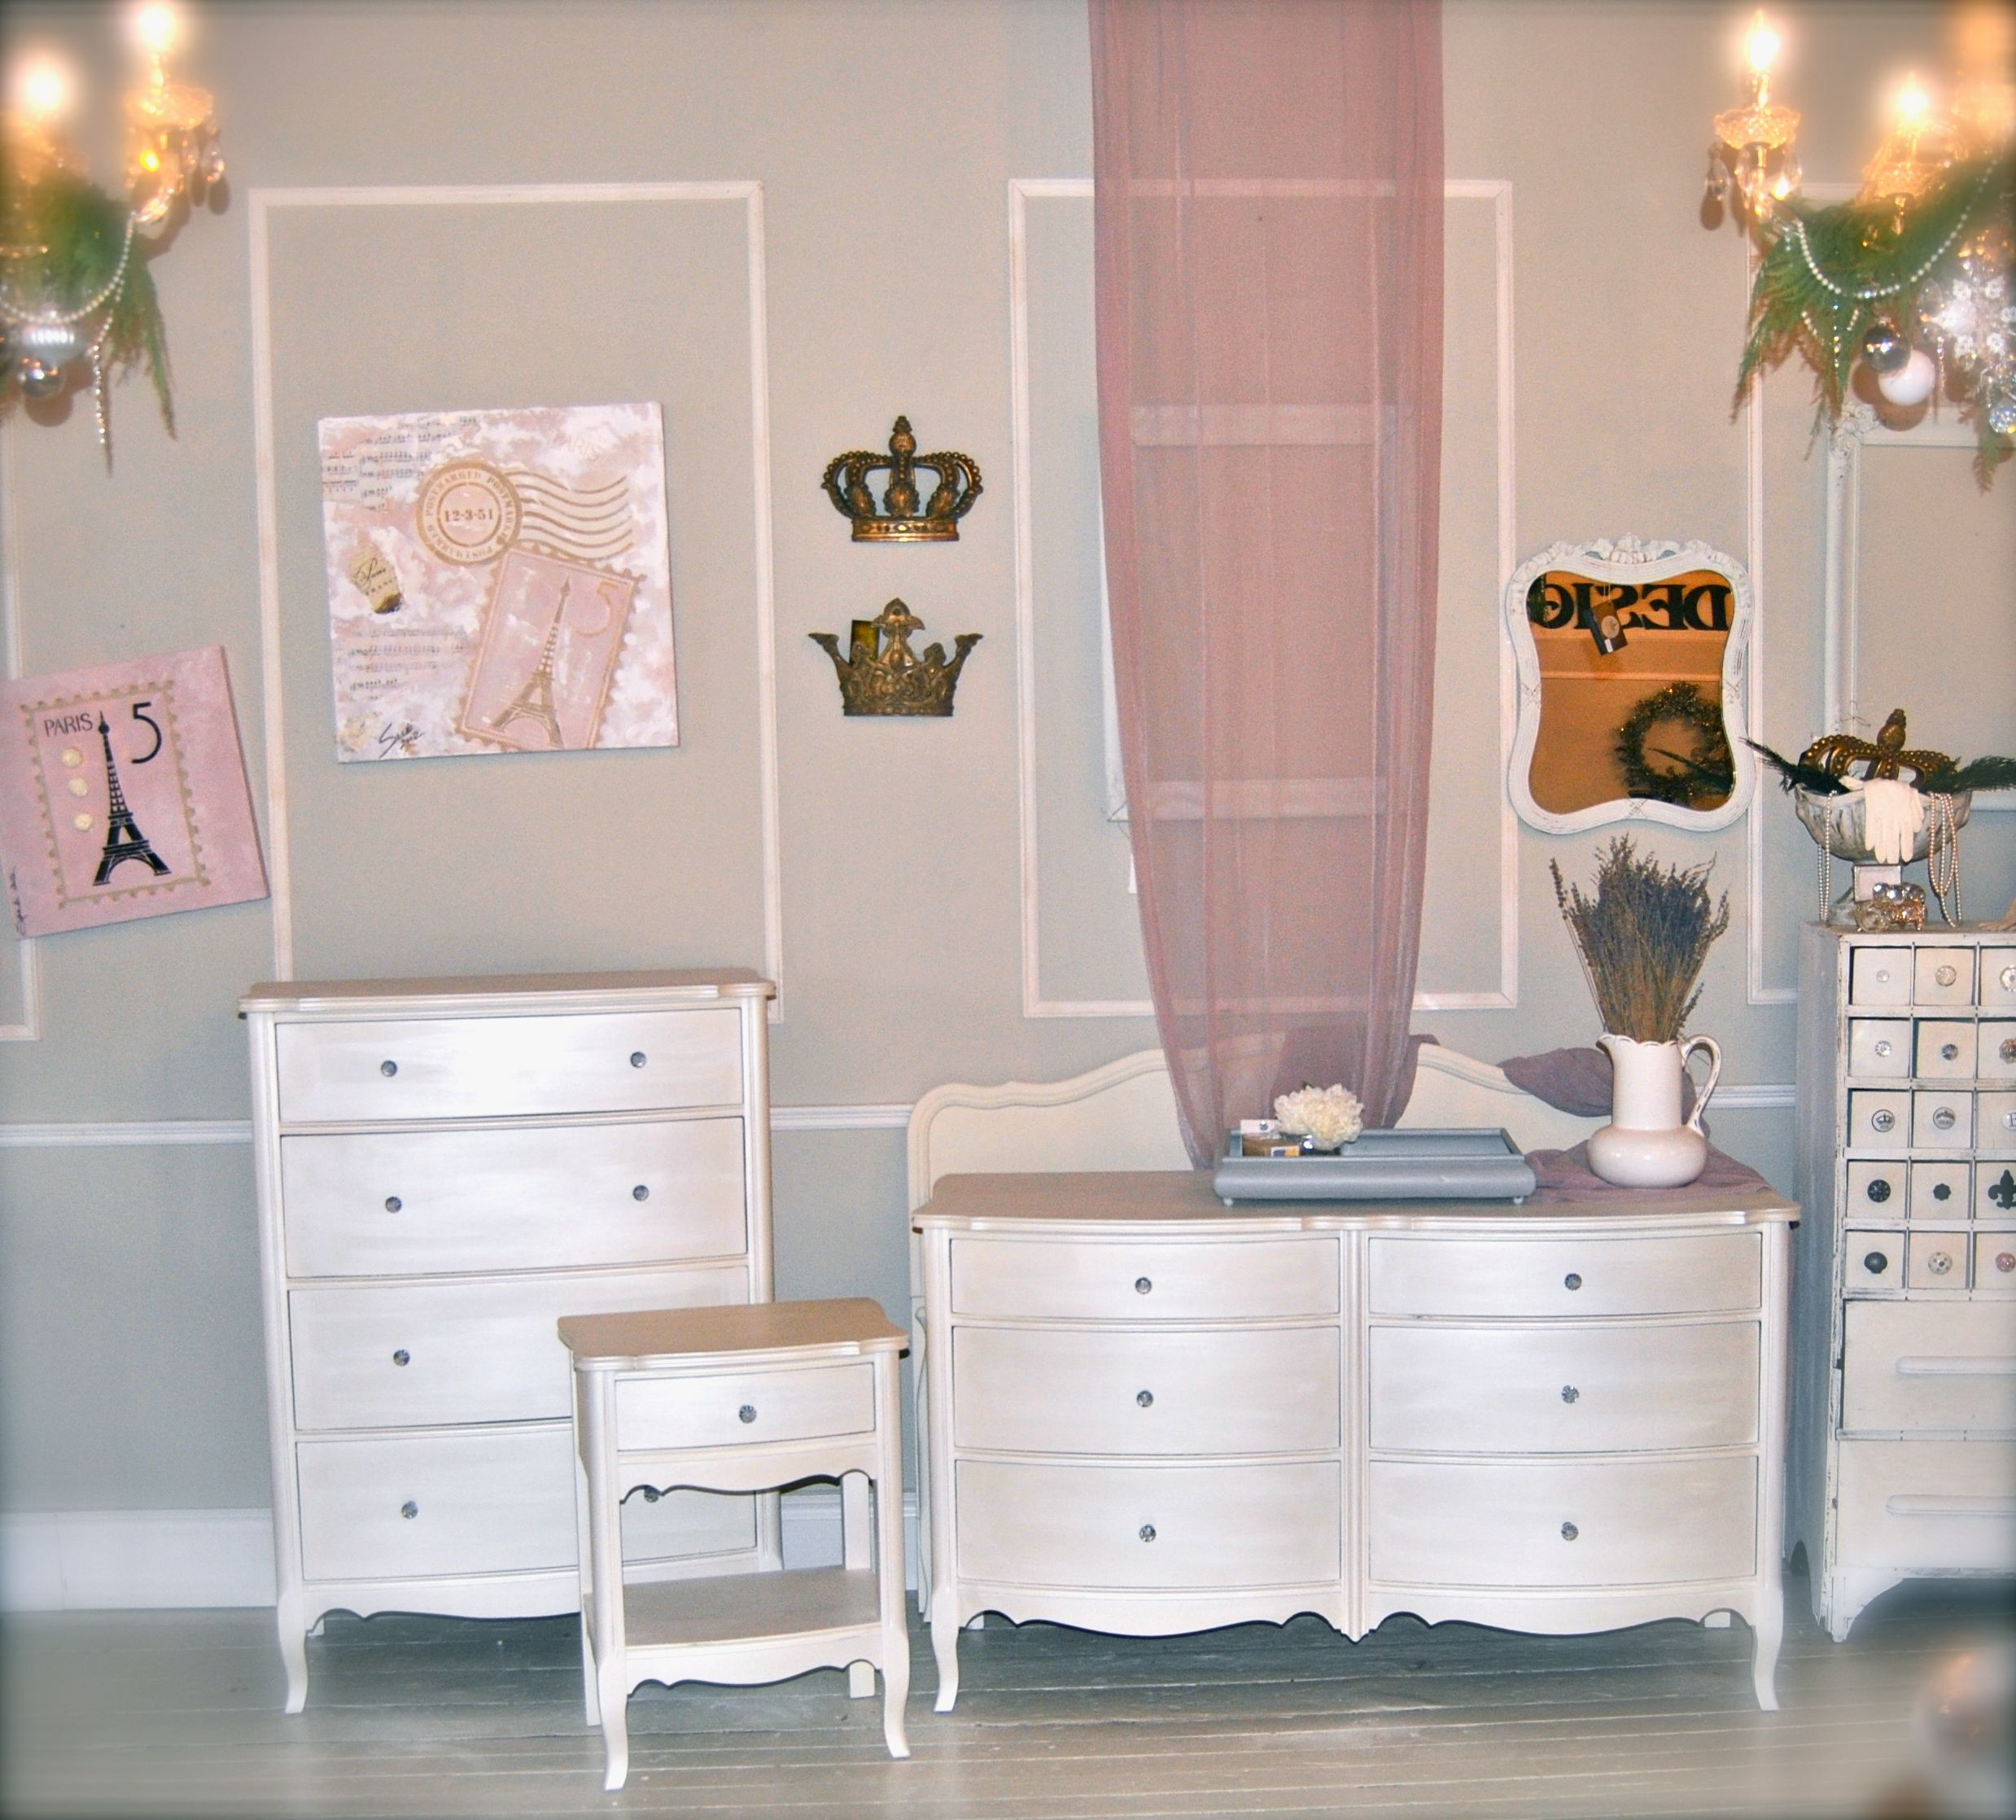 Winsome wood table double drop leaf round mission moon shape fold down - Diamonds Toads Bedroom Suite Painted With Old White Chalk Paint Finished With Artisan